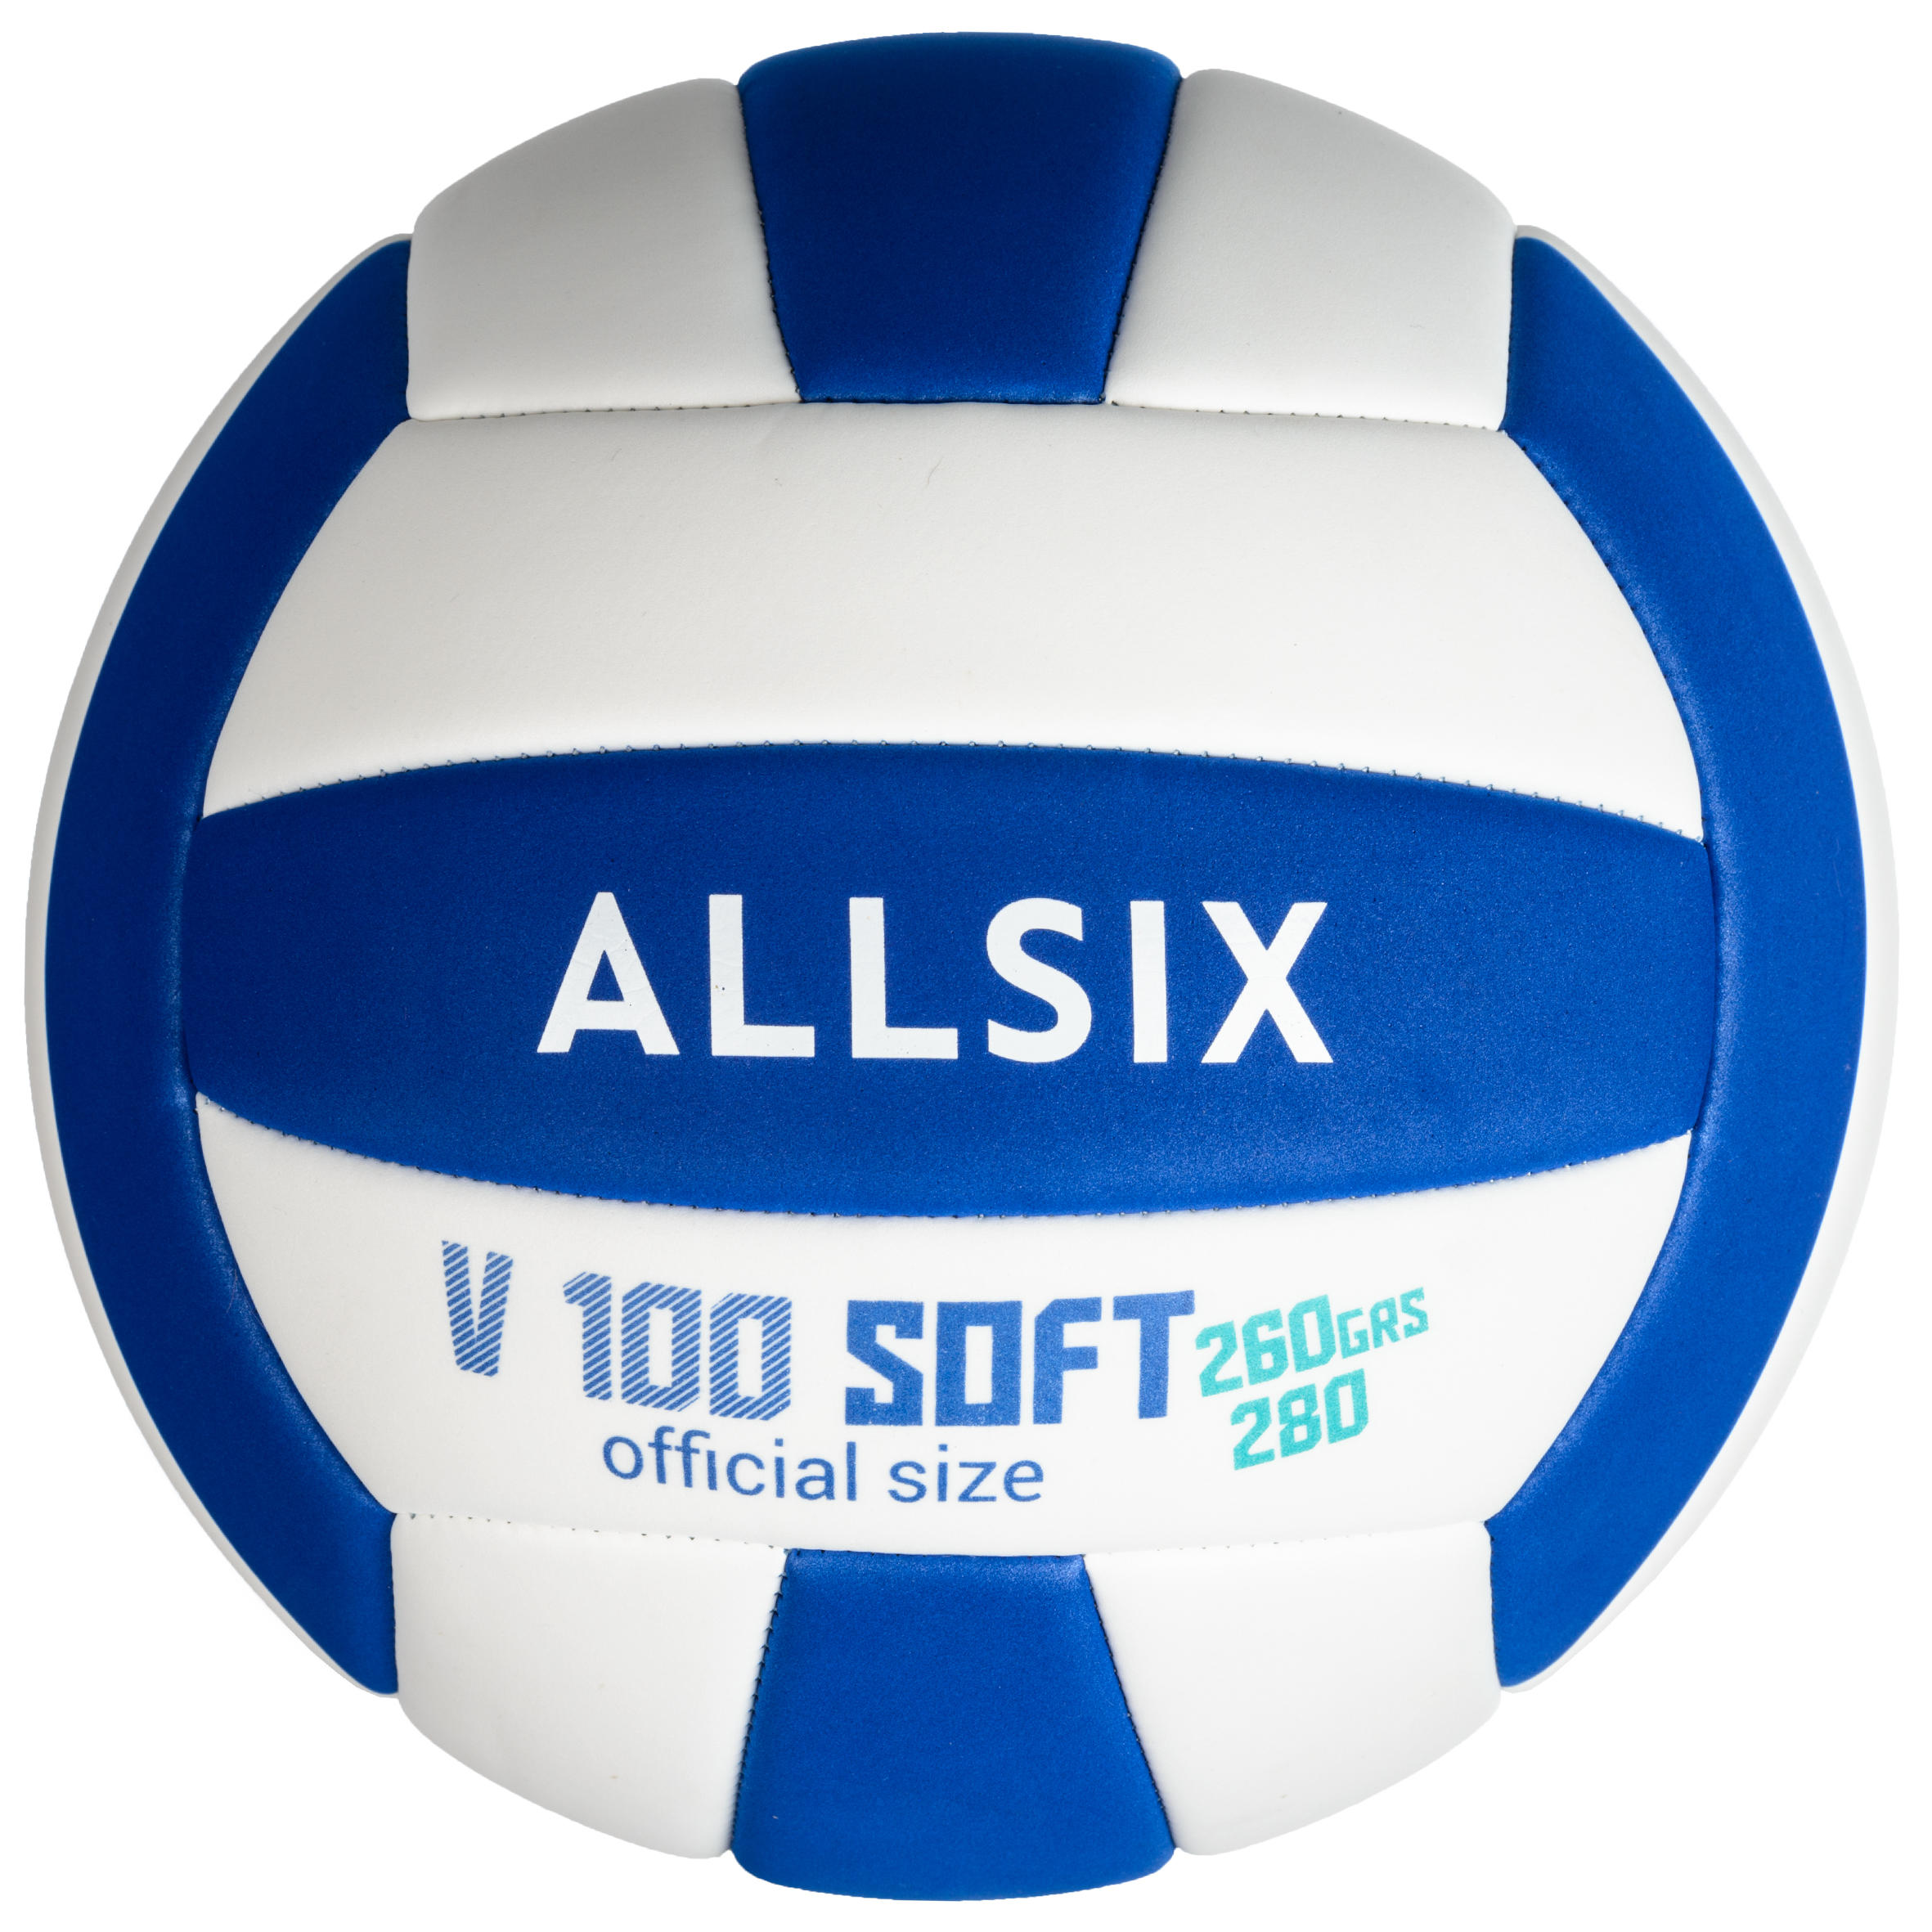 Minge volei V100 SOFT 260 imagine